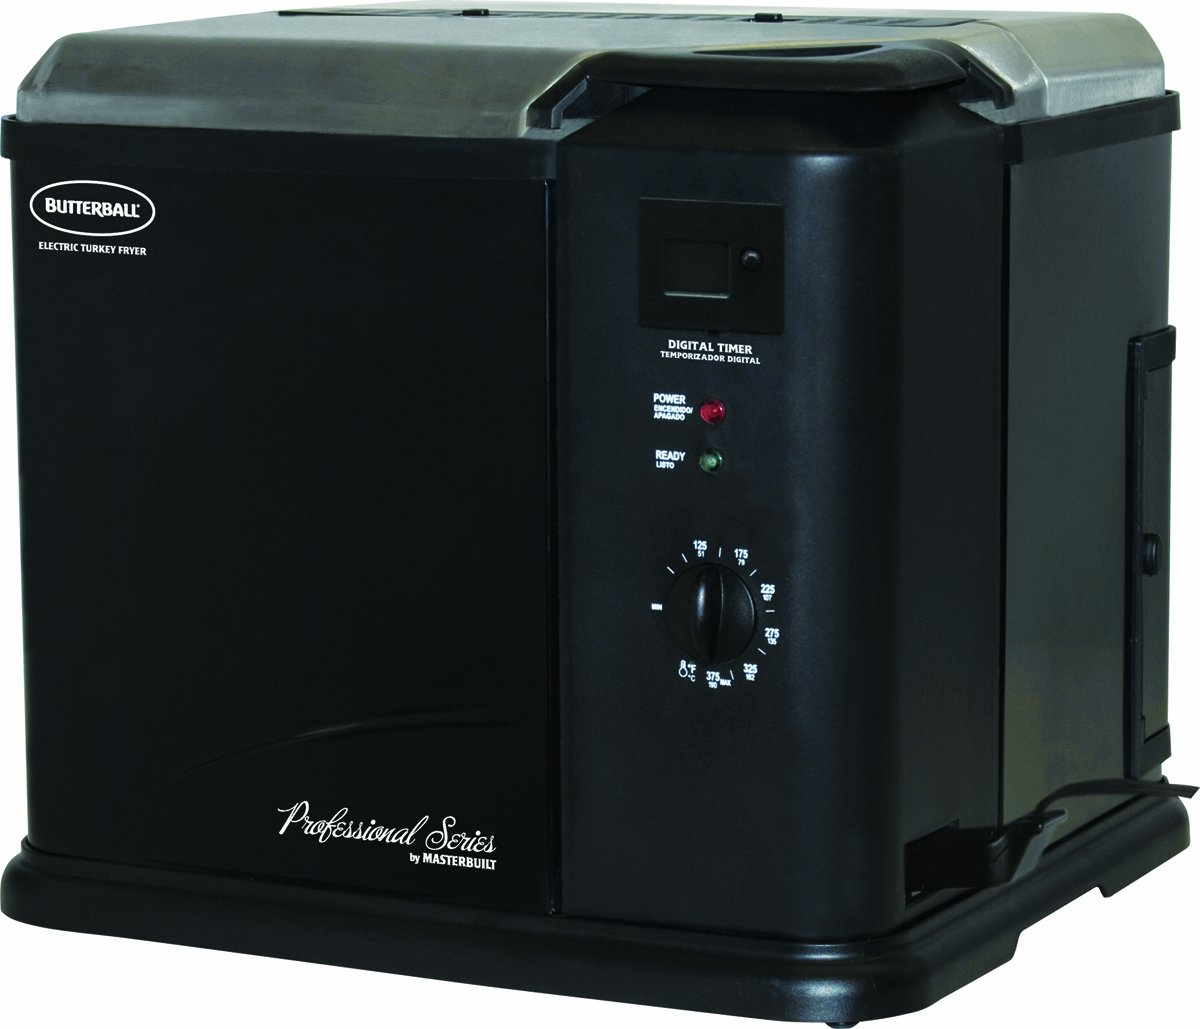 Masterbuilt 20010611 Butterball Professional Series Indoor Electric Turkey Fryer Black at Sears.com